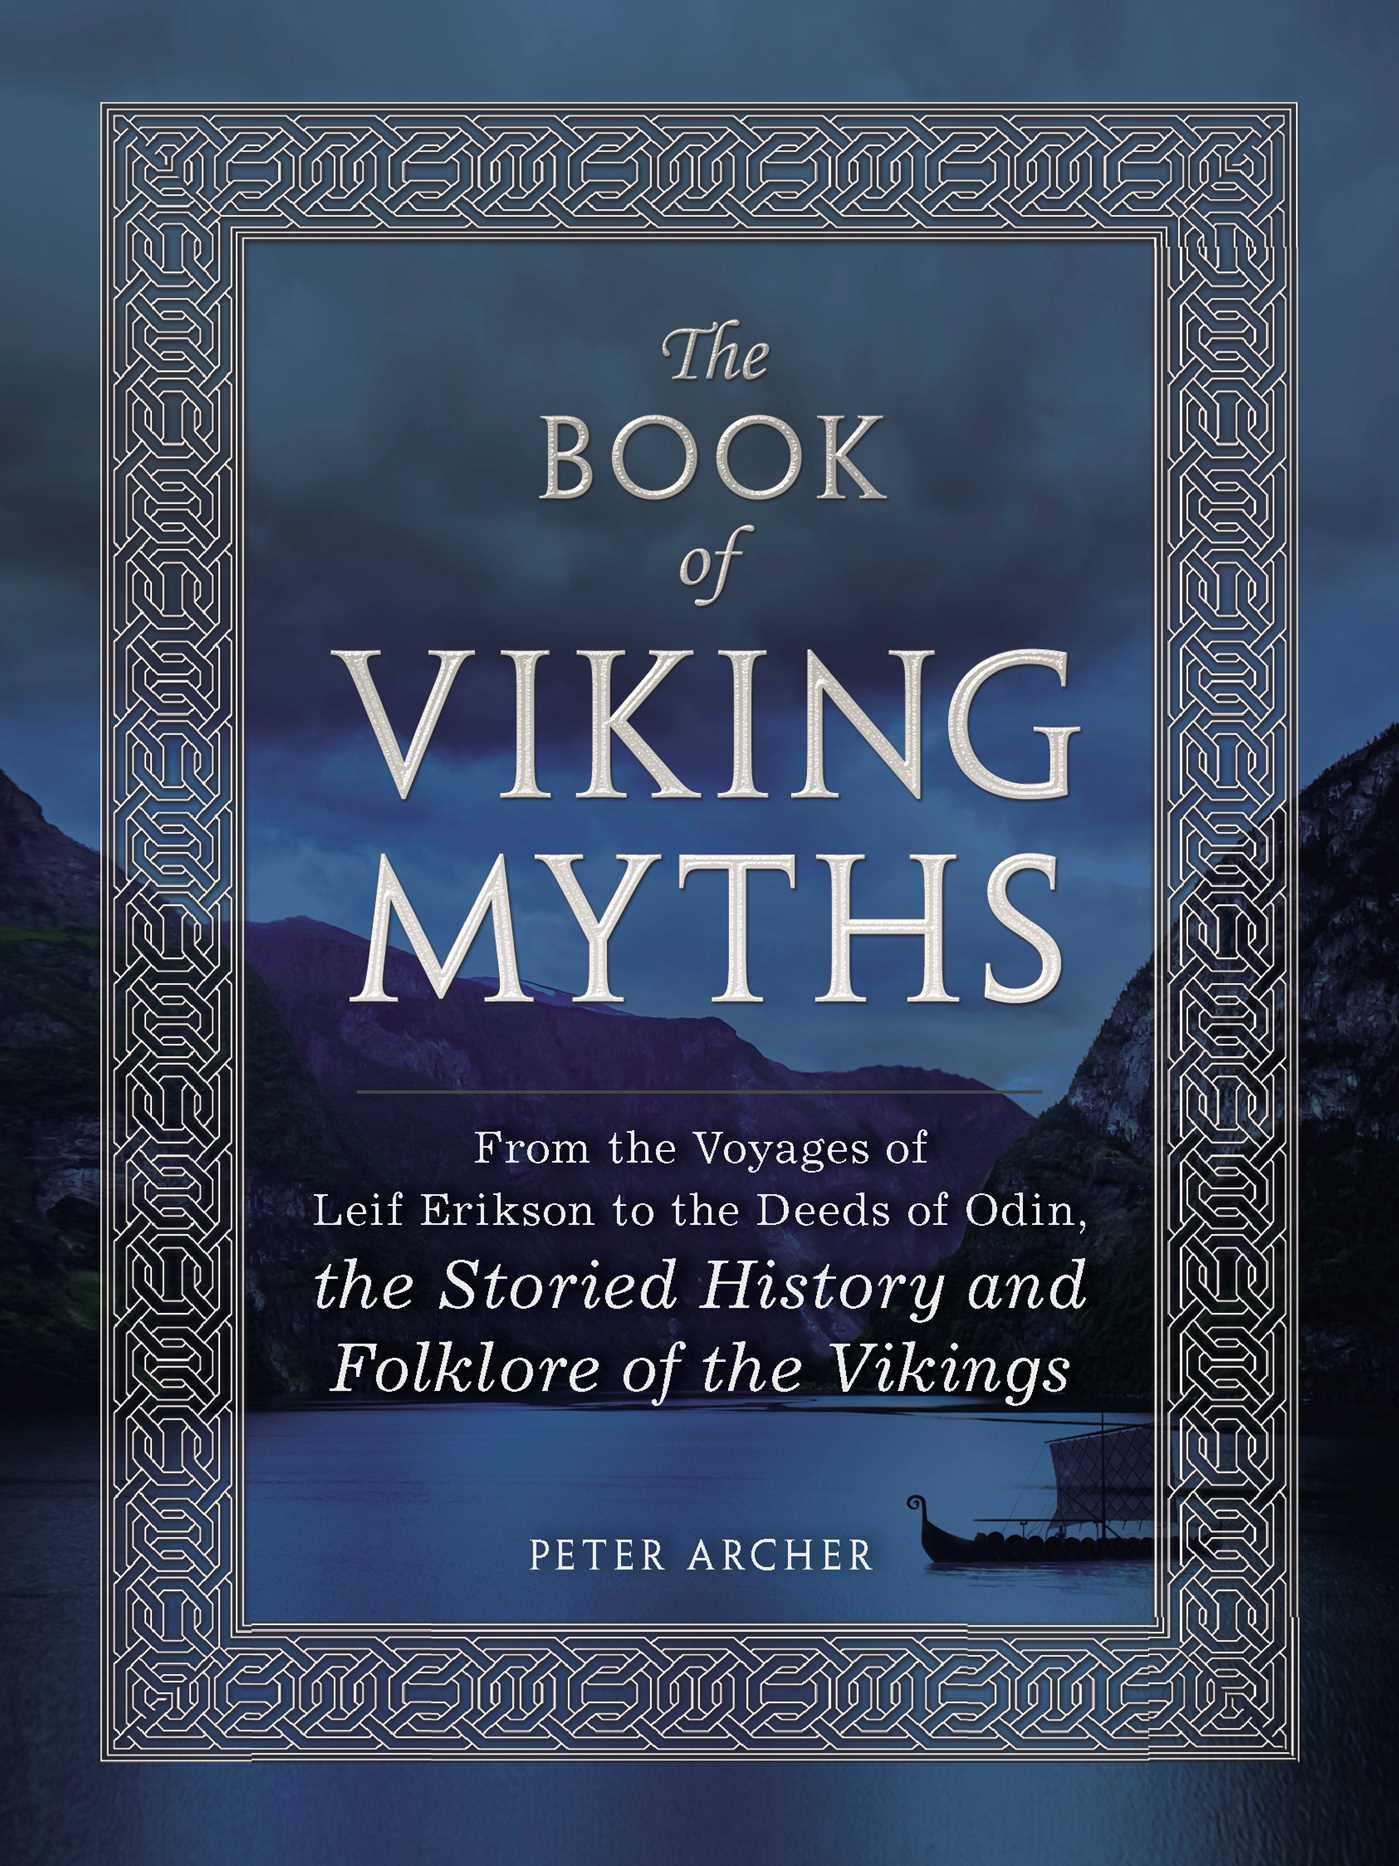 The book of viking myths 9781507201442 hr